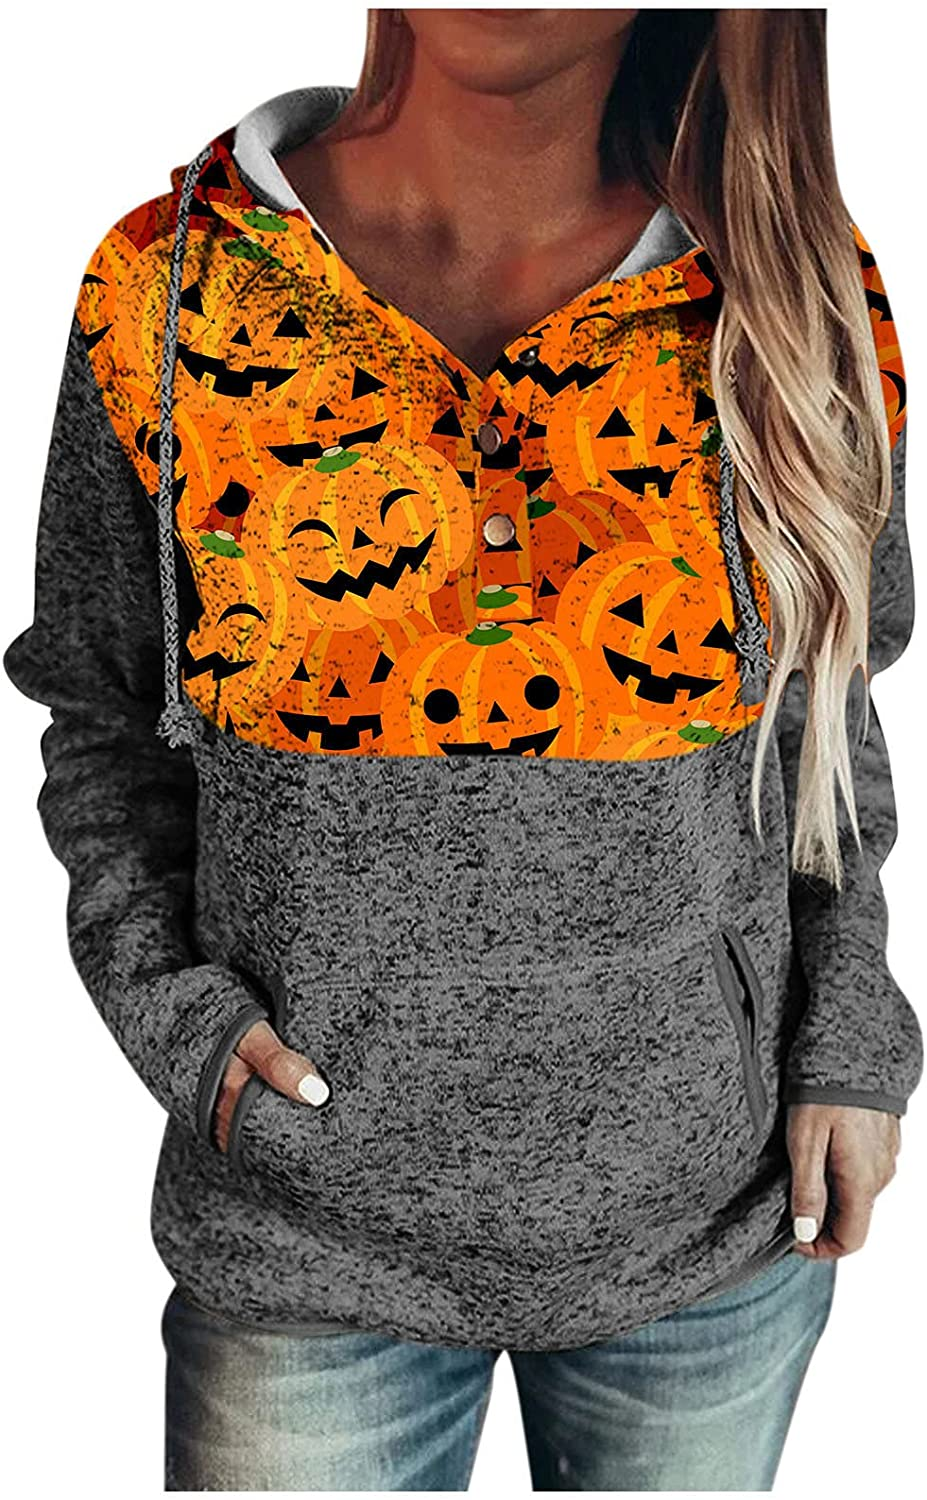 Hoodies for Women,Womens Drawstring Long Sleeve Sweatshirts Hoodies Hooded Button Down Pullover Casual Pocket Tops